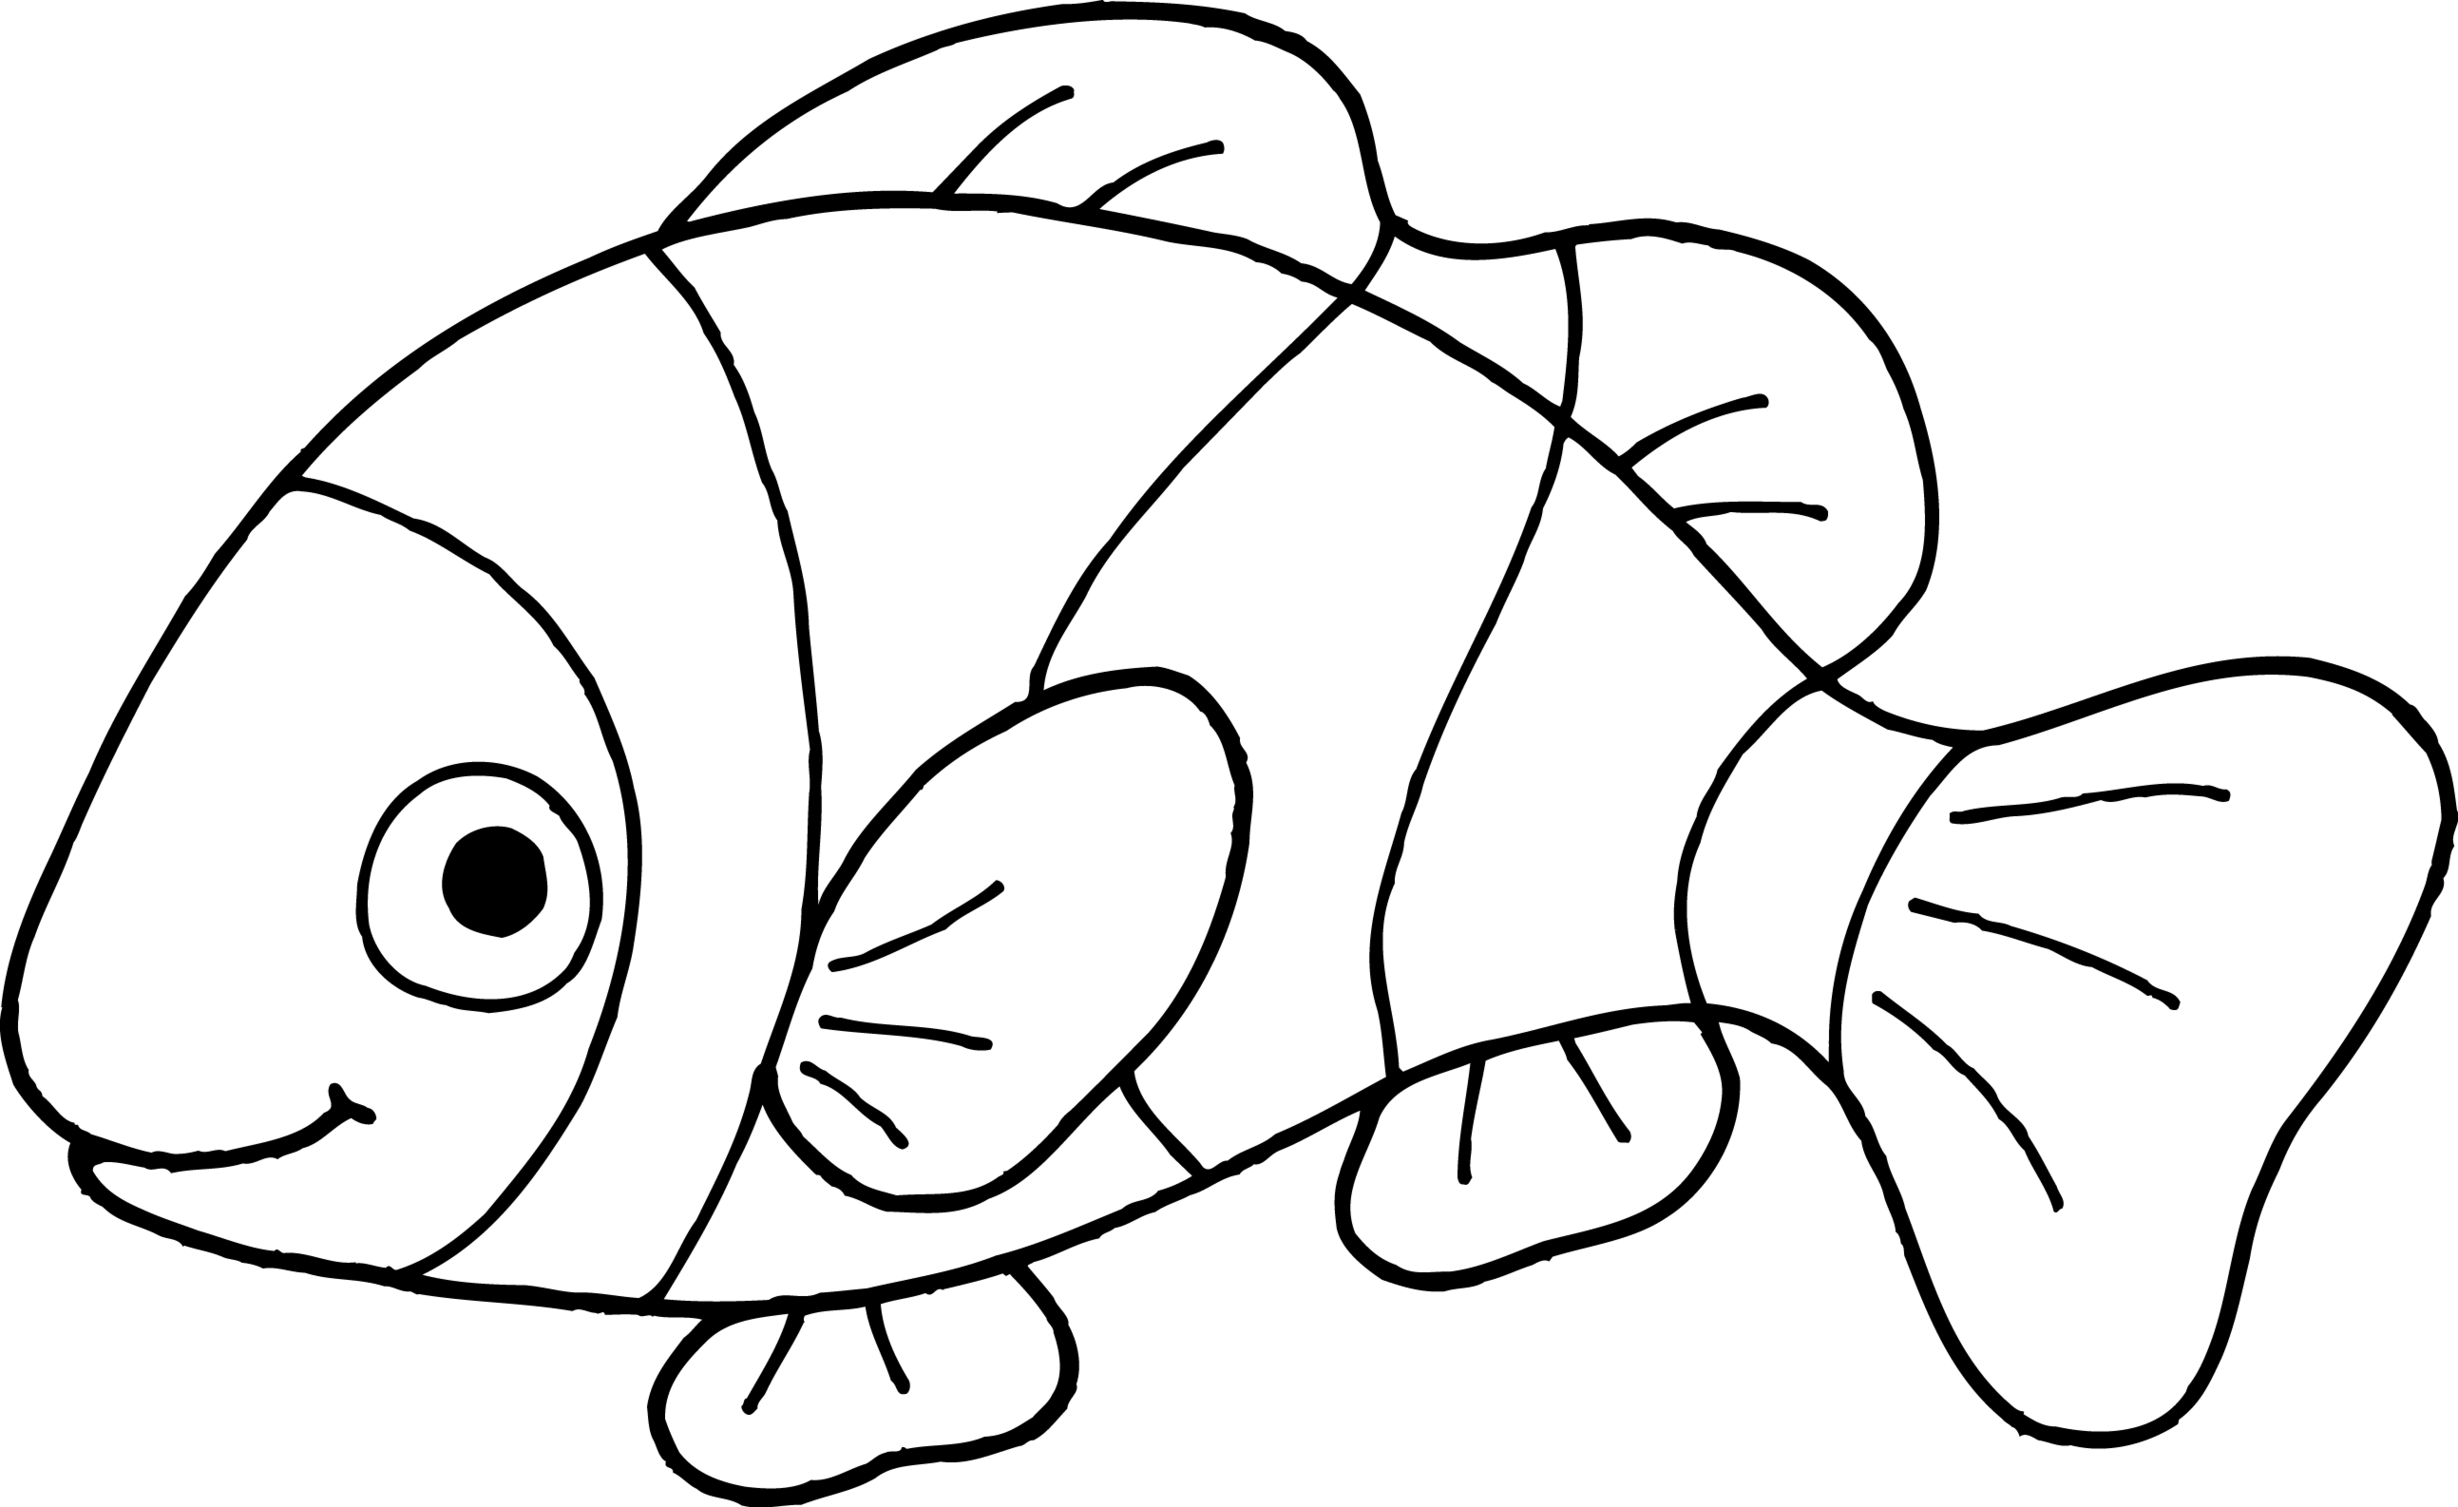 2458x1507 Clownfish Clown Fish Outline Clipart Wikiclipart